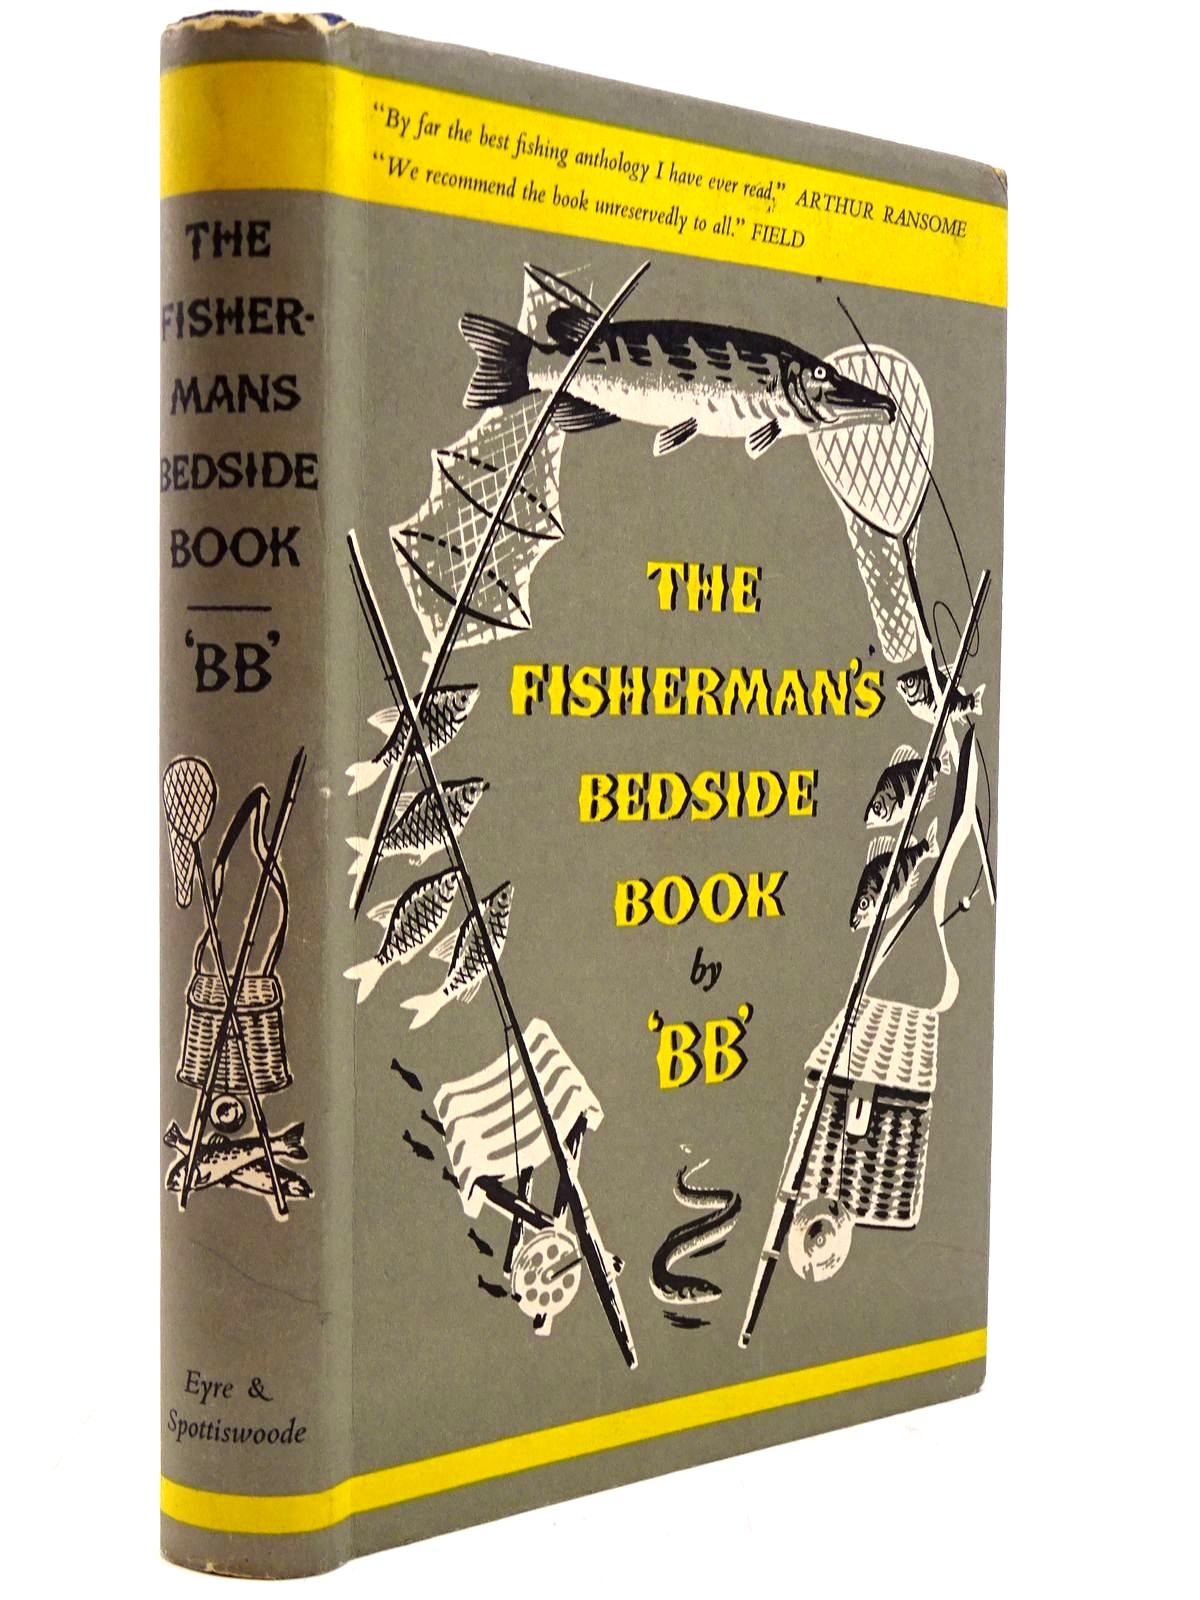 Photo of THE FISHERMAN'S BEDSIDE BOOK written by BB,  illustrated by BB,  published by Eyre & Spottiswoode (STOCK CODE: 2131126)  for sale by Stella & Rose's Books